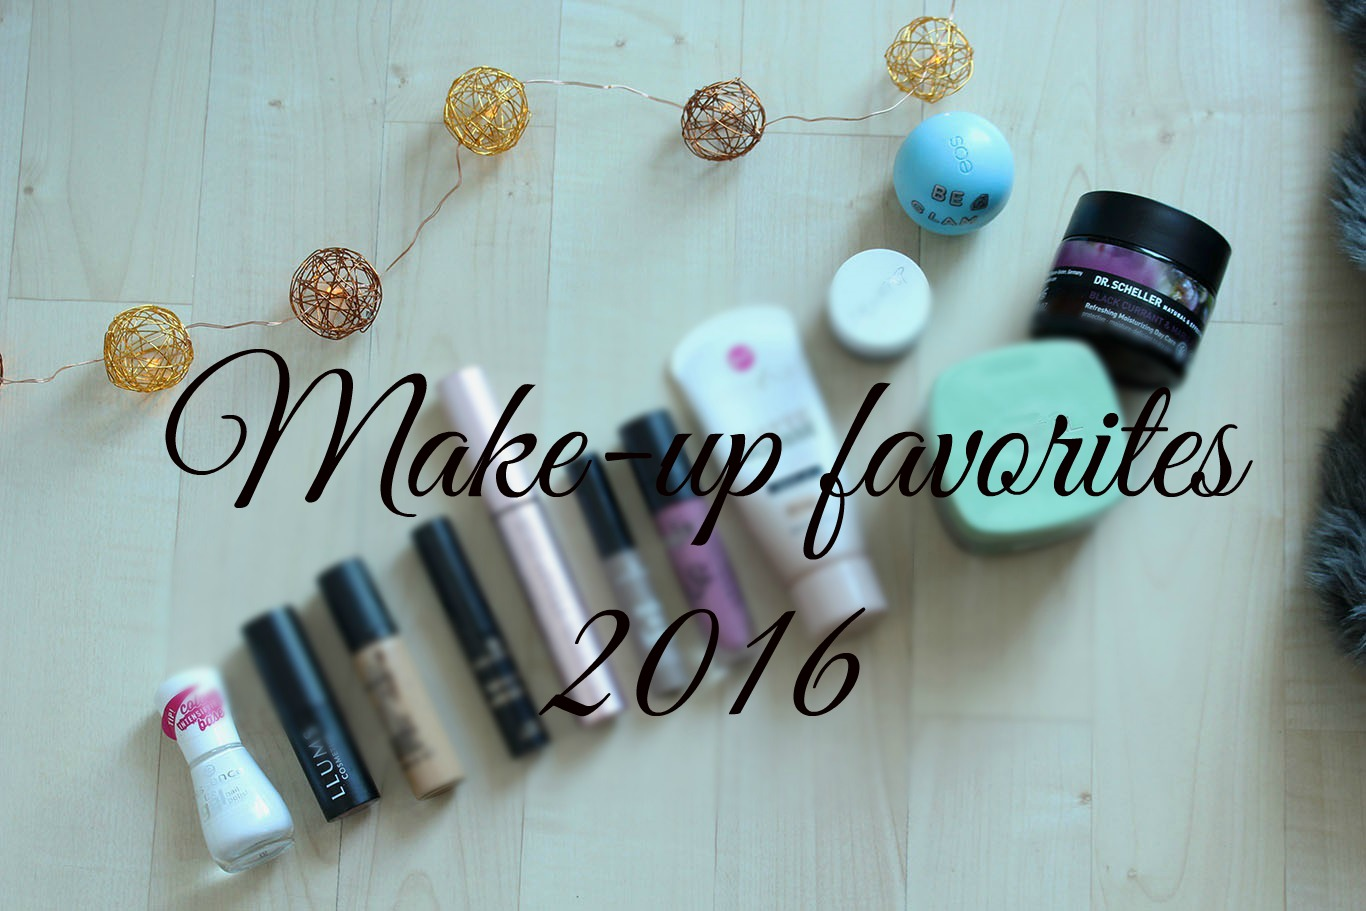 Make-up favorites 2016